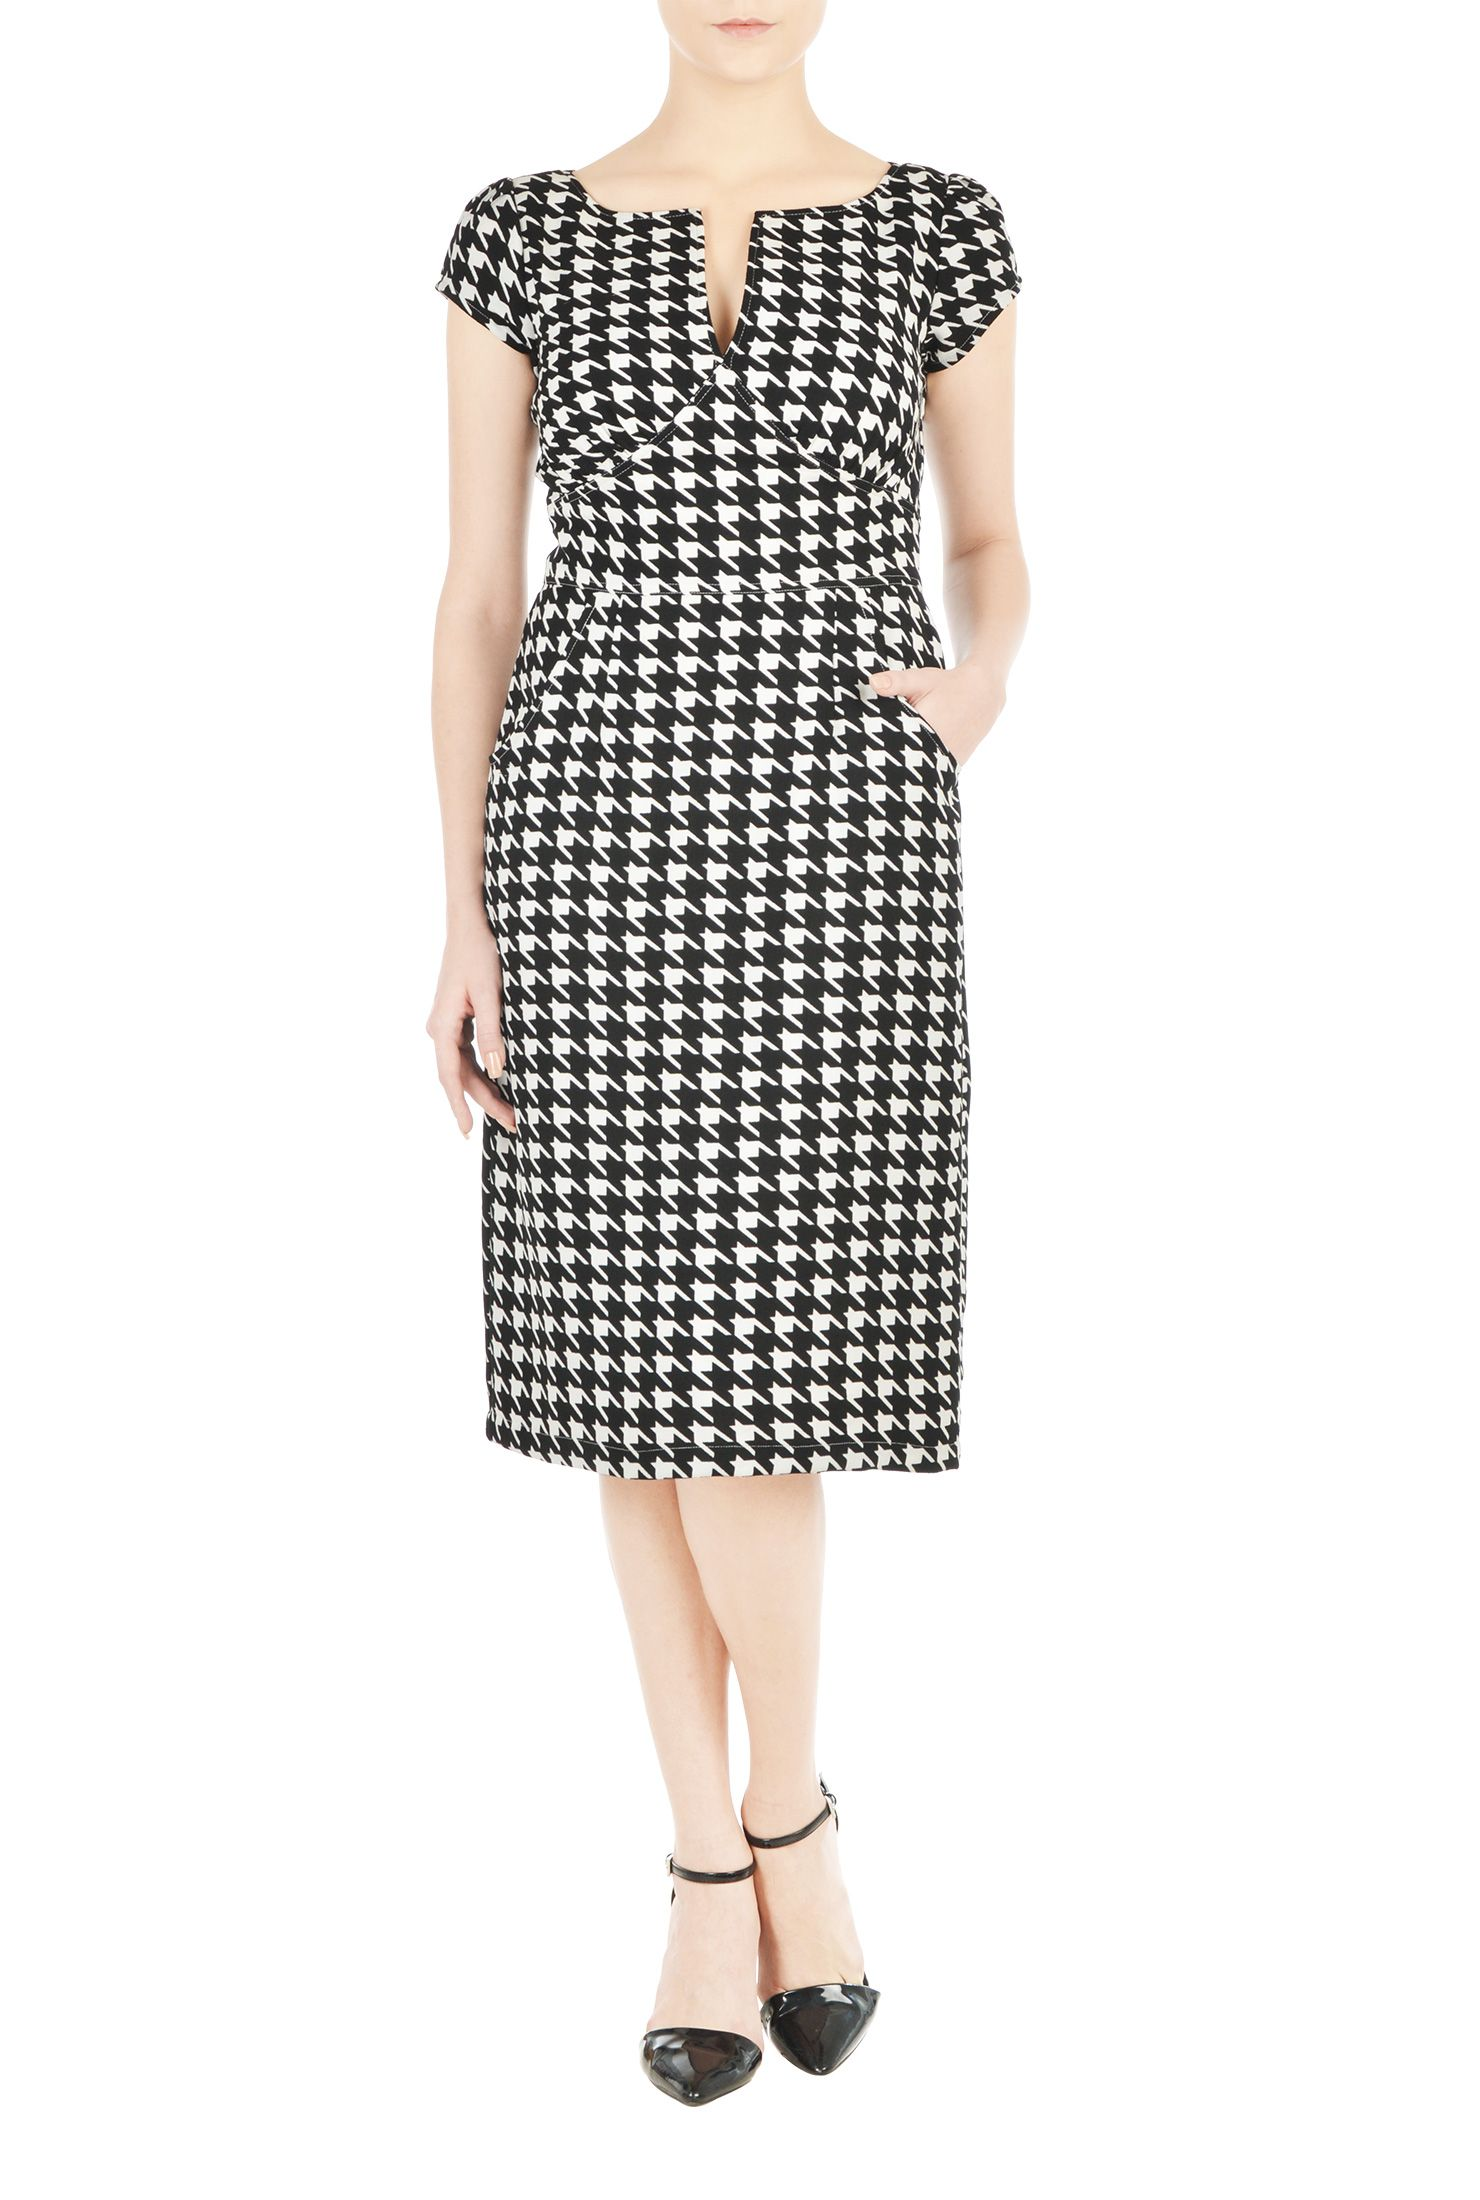 a585dee83f43d9 Make a flirty statement in our houndstooth check print dress styled with a  split-neck